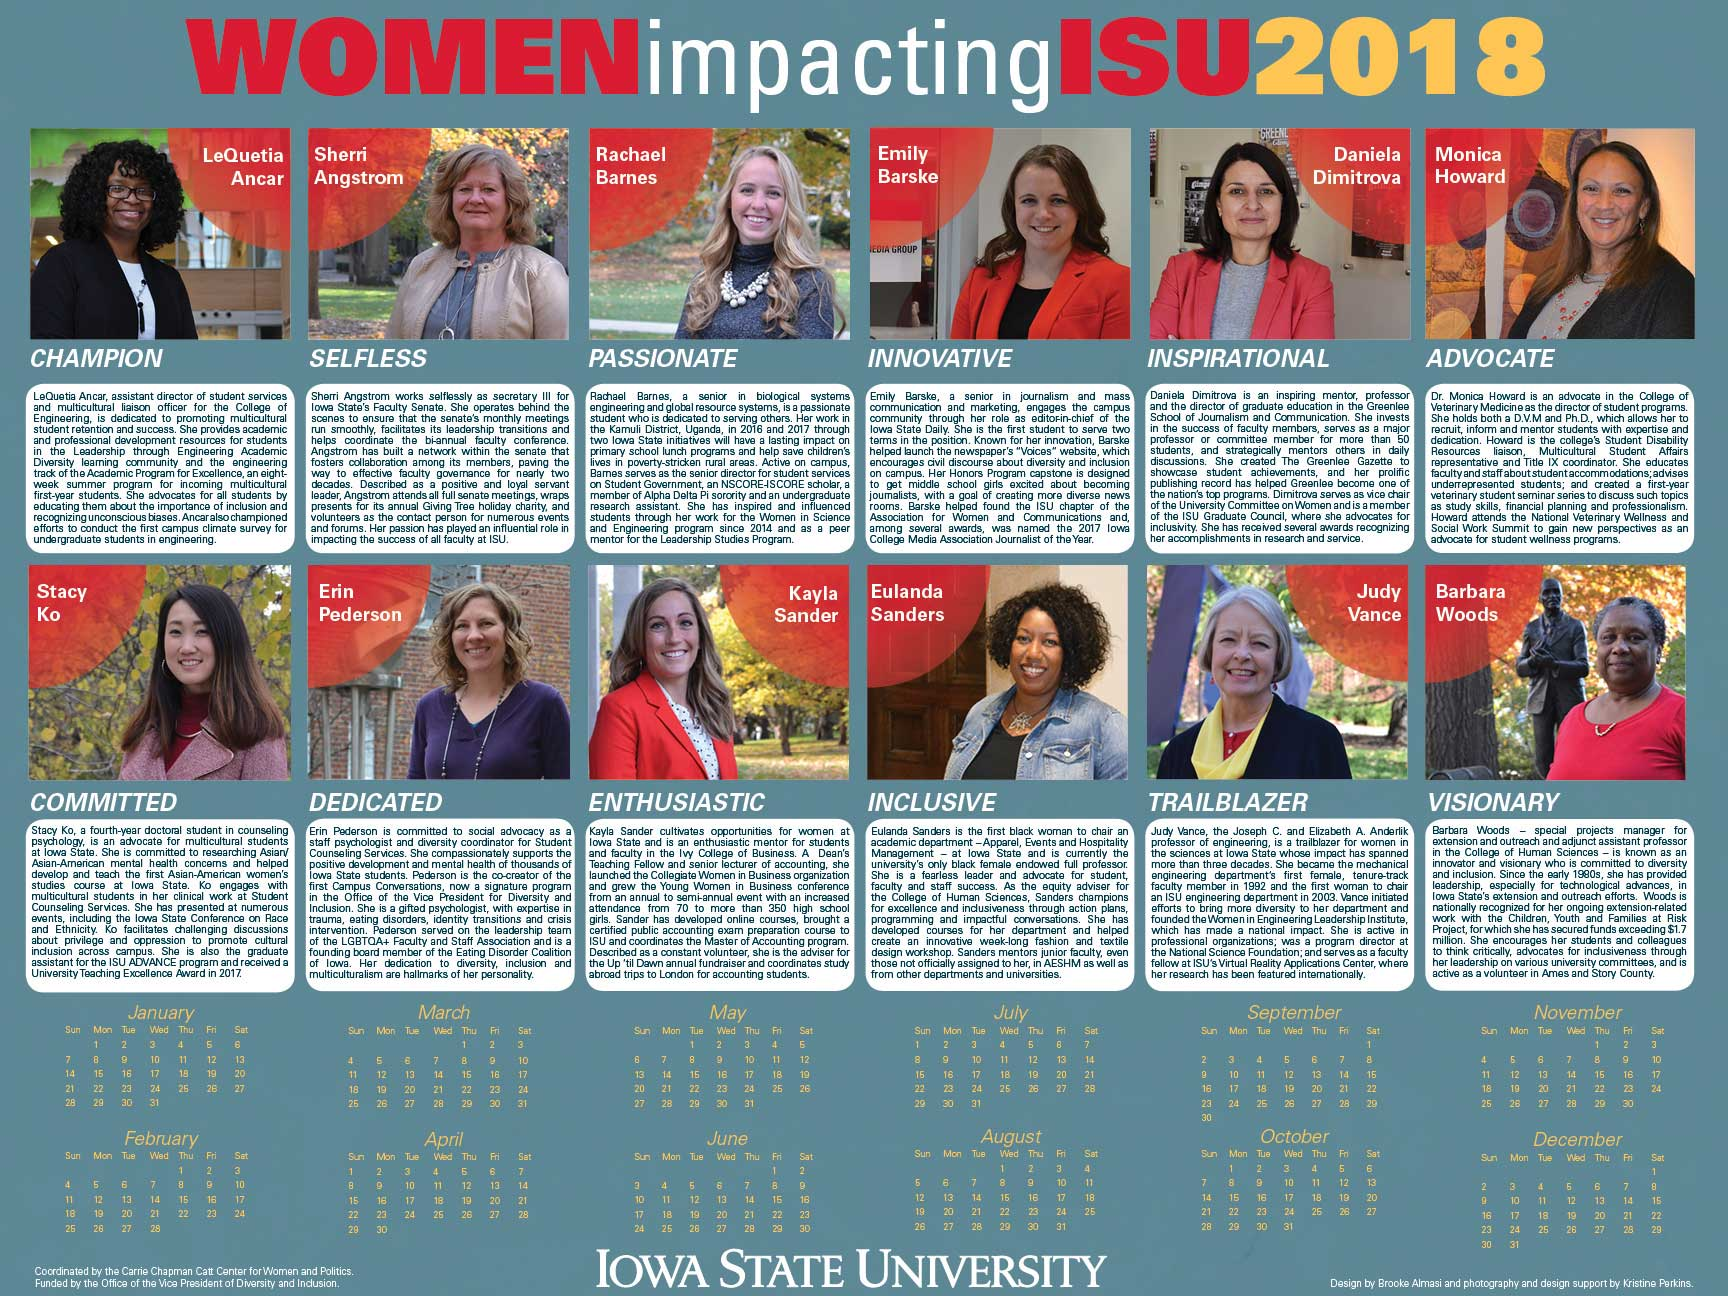 Reception Recognizes 2018 Women Impacting Isu Calendar Honorees